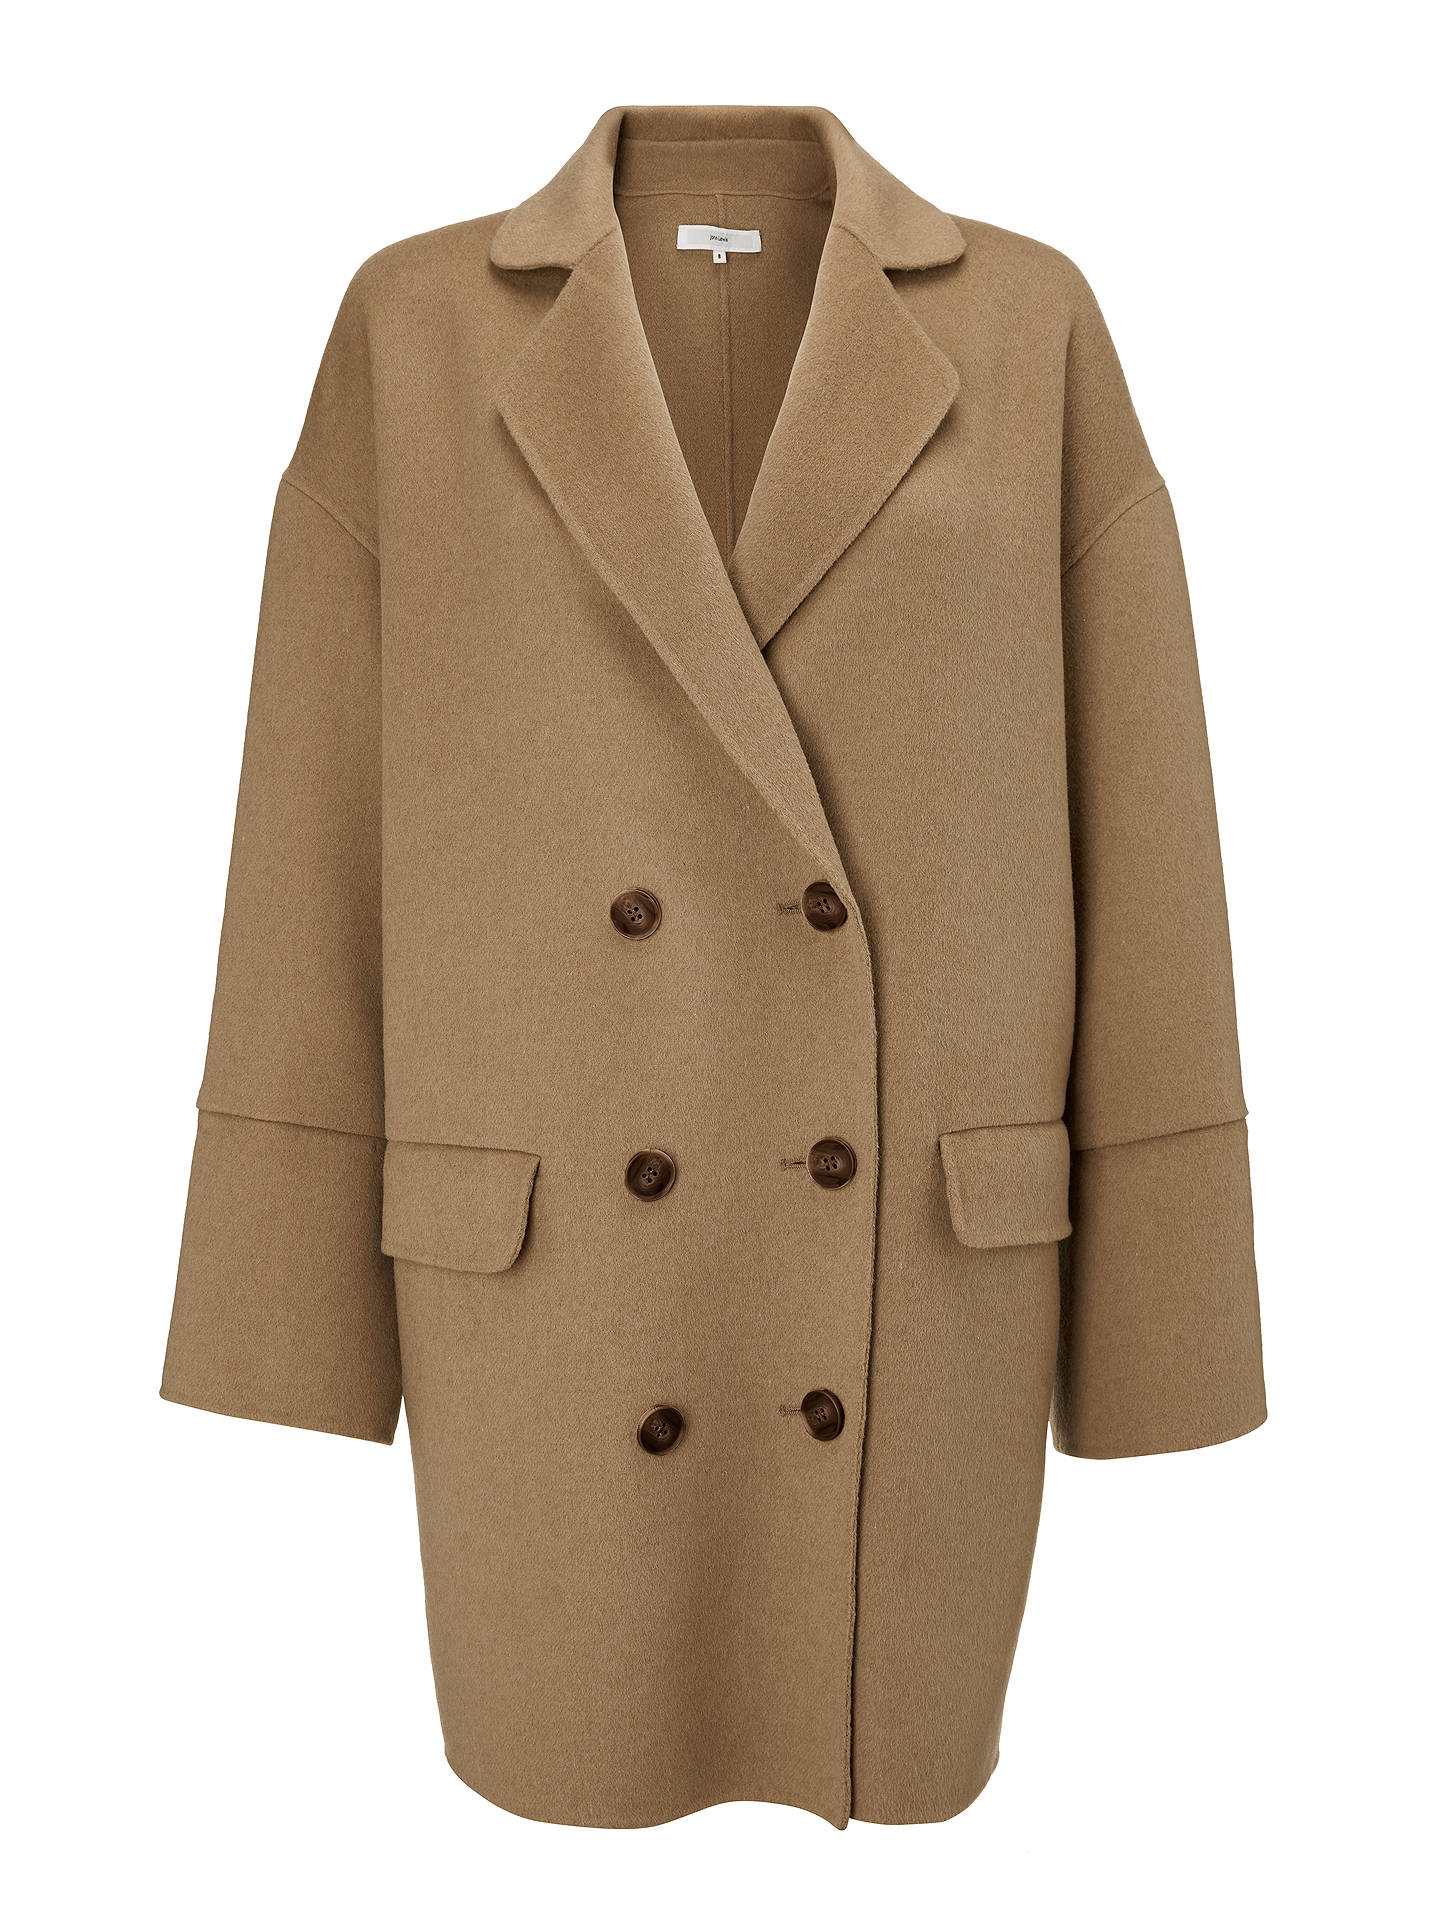 Buy John Lewis & Partners Double Faced Double Breasted Jacket, Camel, 16 Online at johnlewis.com